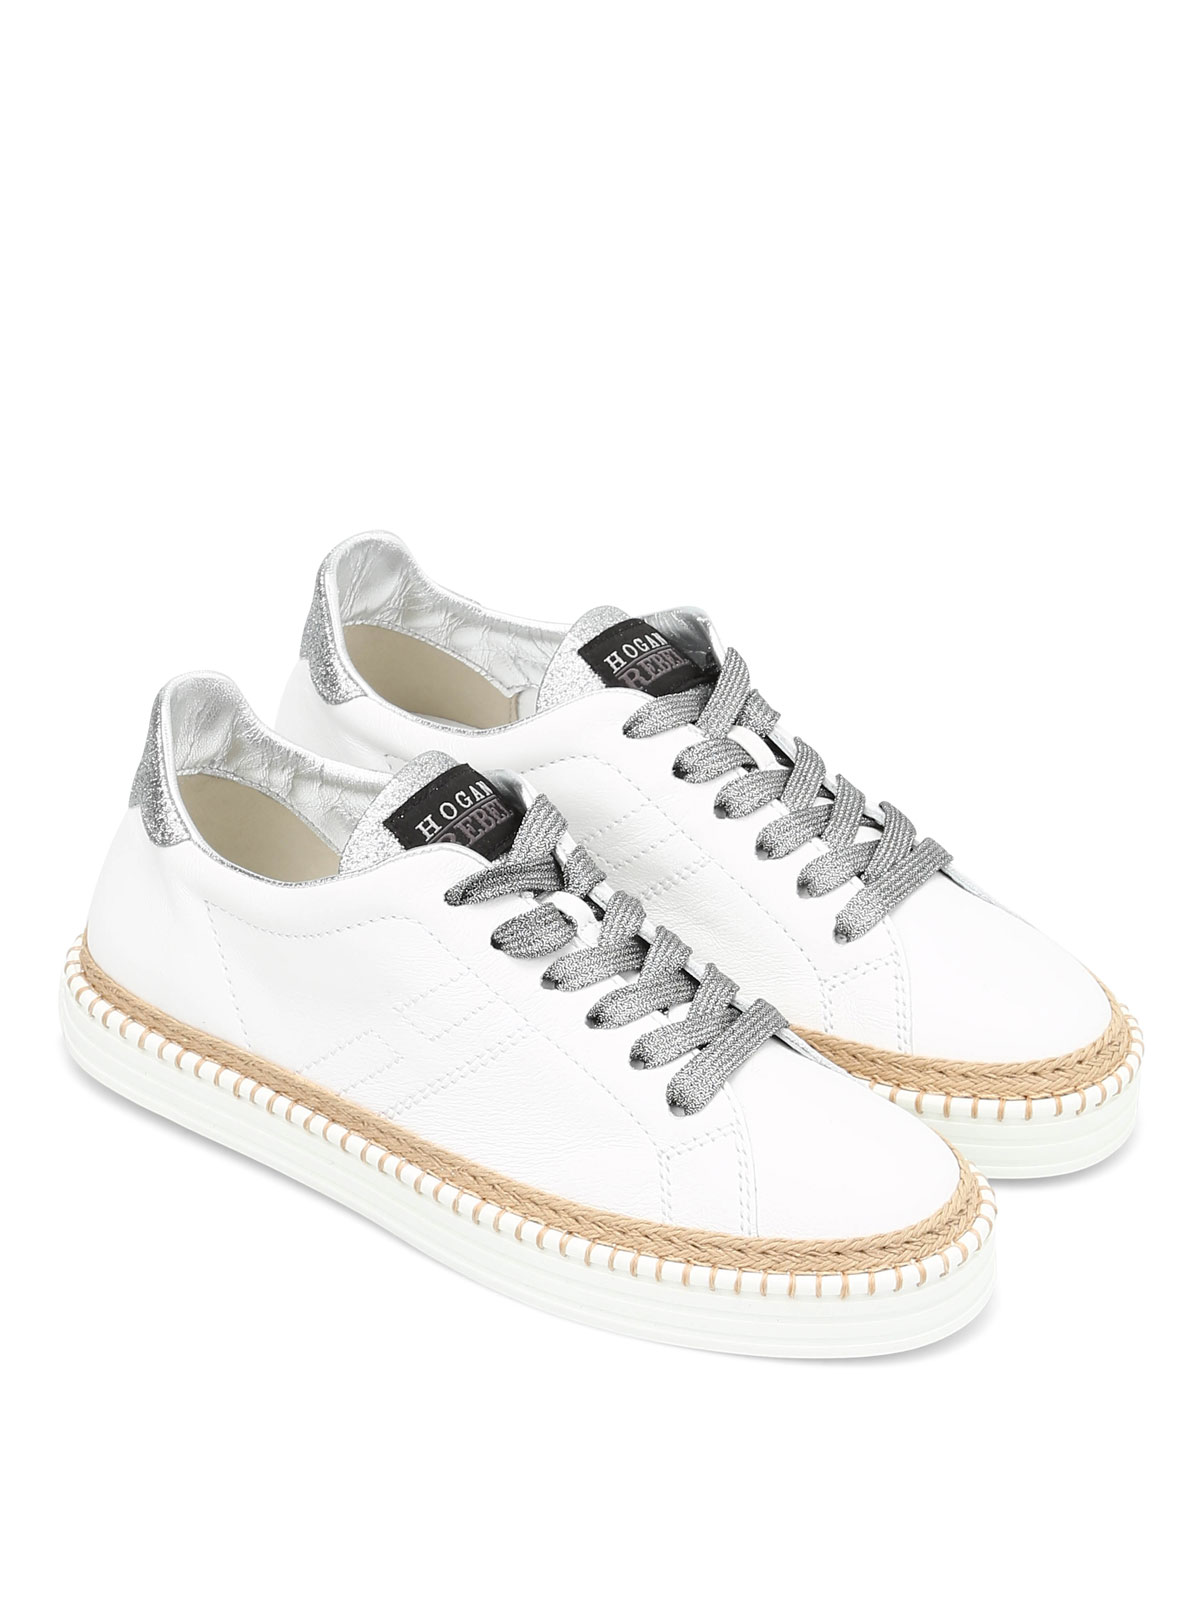 Hogan - R260 leather and rope trainers - trainers - HXW2600U560FPP0351